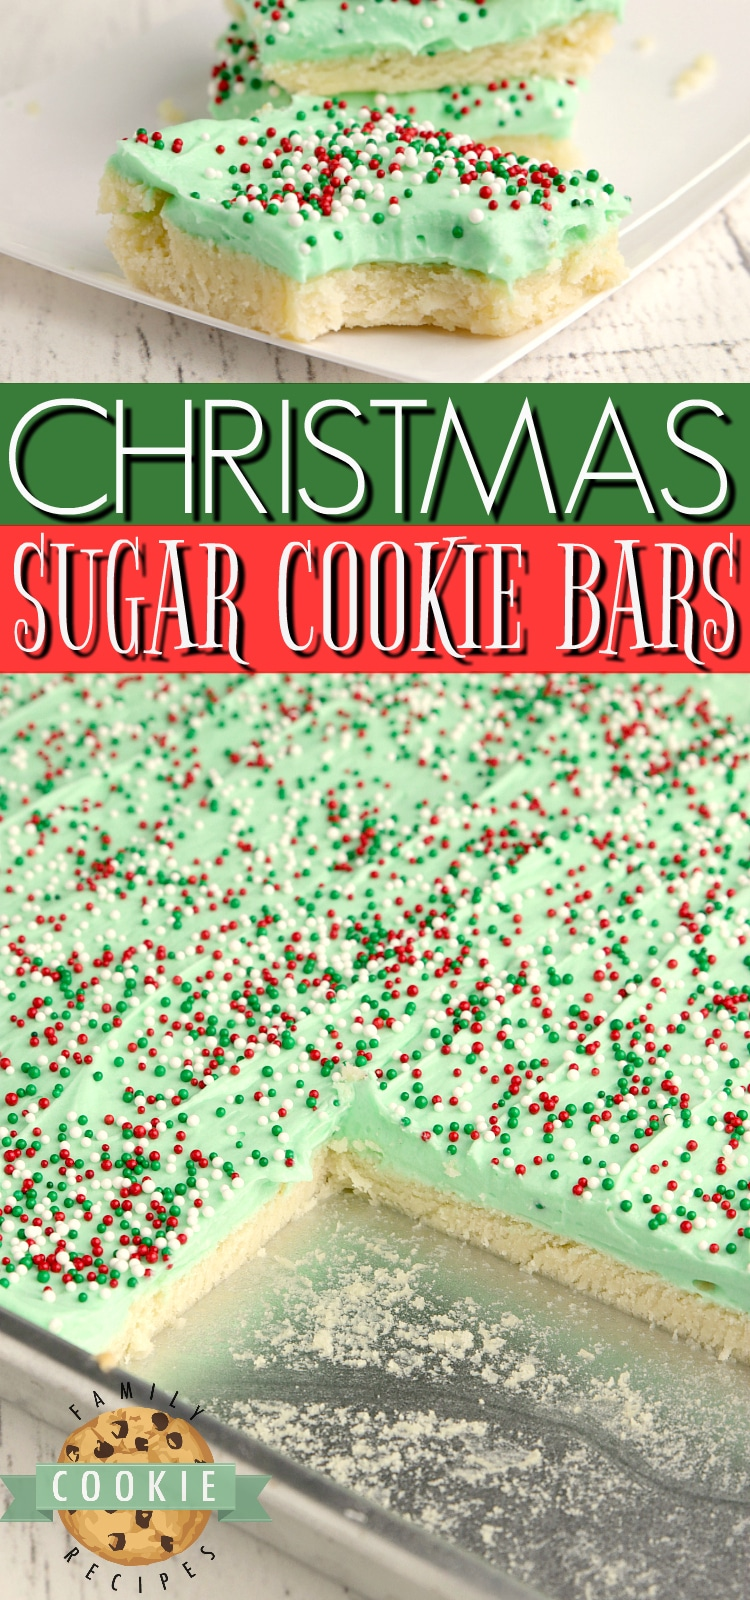 Christmas Sugar Cookie Bars are thick, soft and absolutely amazing! Best sugar cookie bar recipe that I've ever tried! via @buttergirls